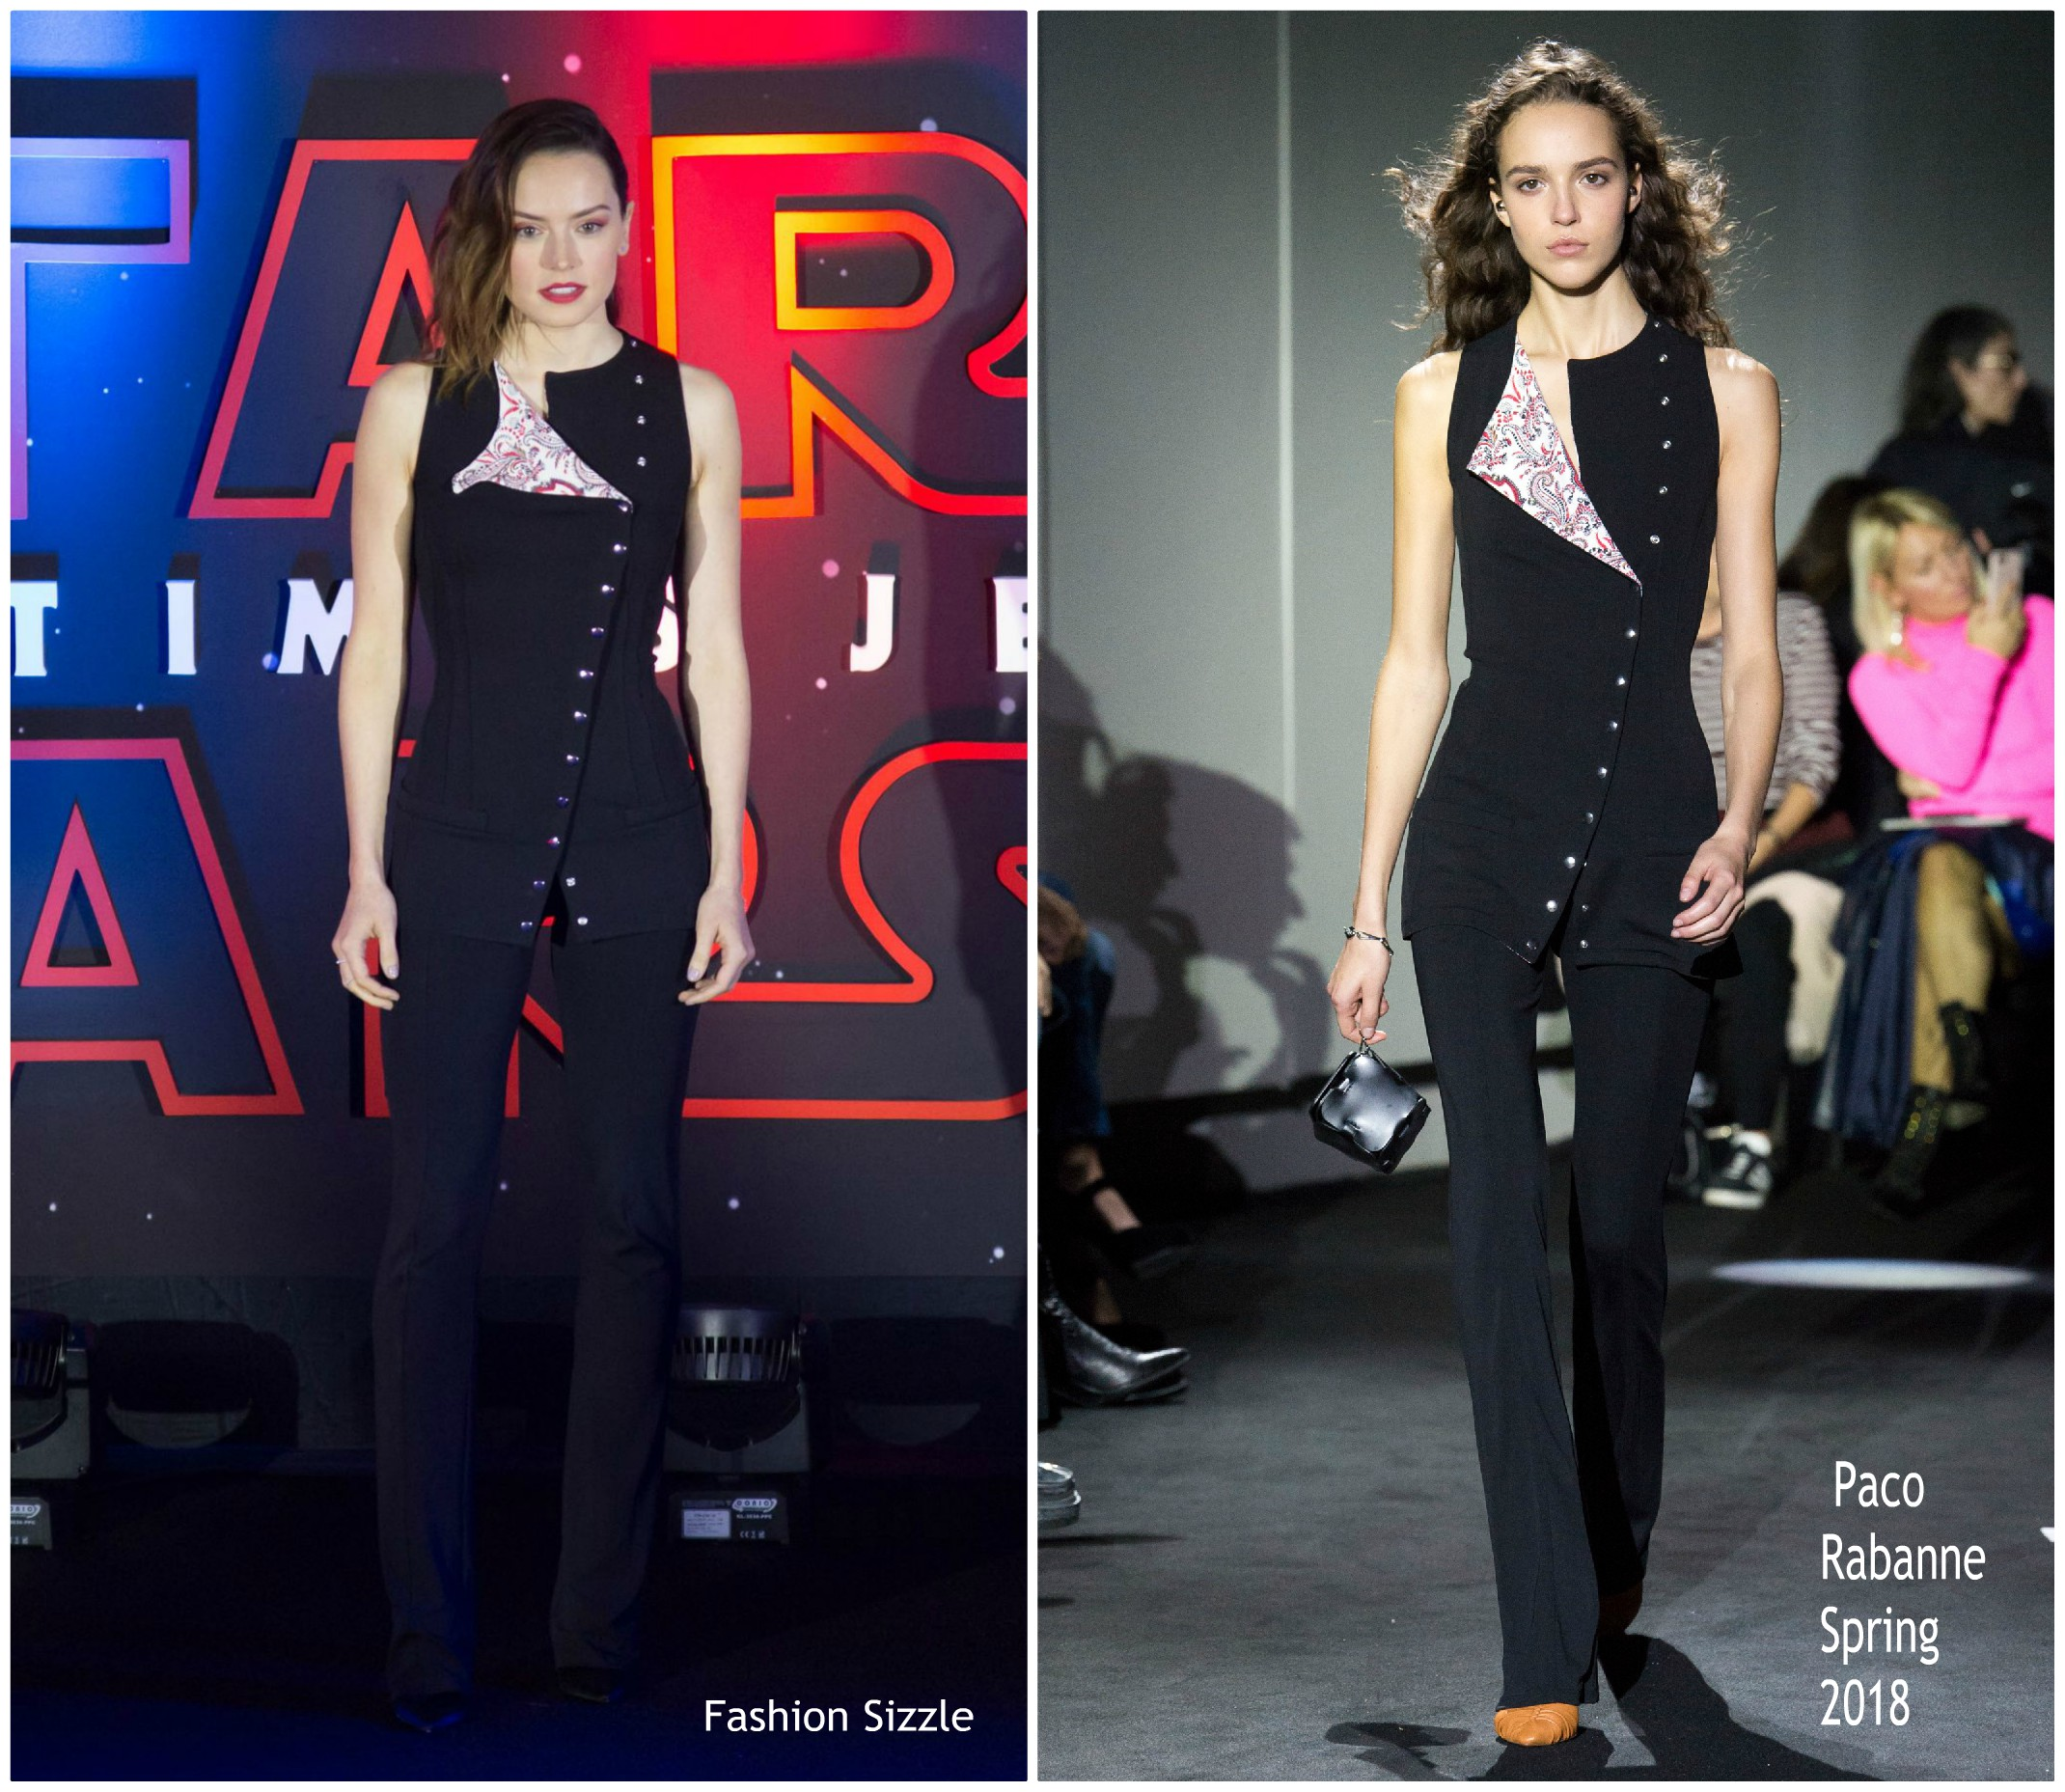 daisy-ridley-in-paco-rabanne-star-wars-the-last-jedi-mexico-city-premiere